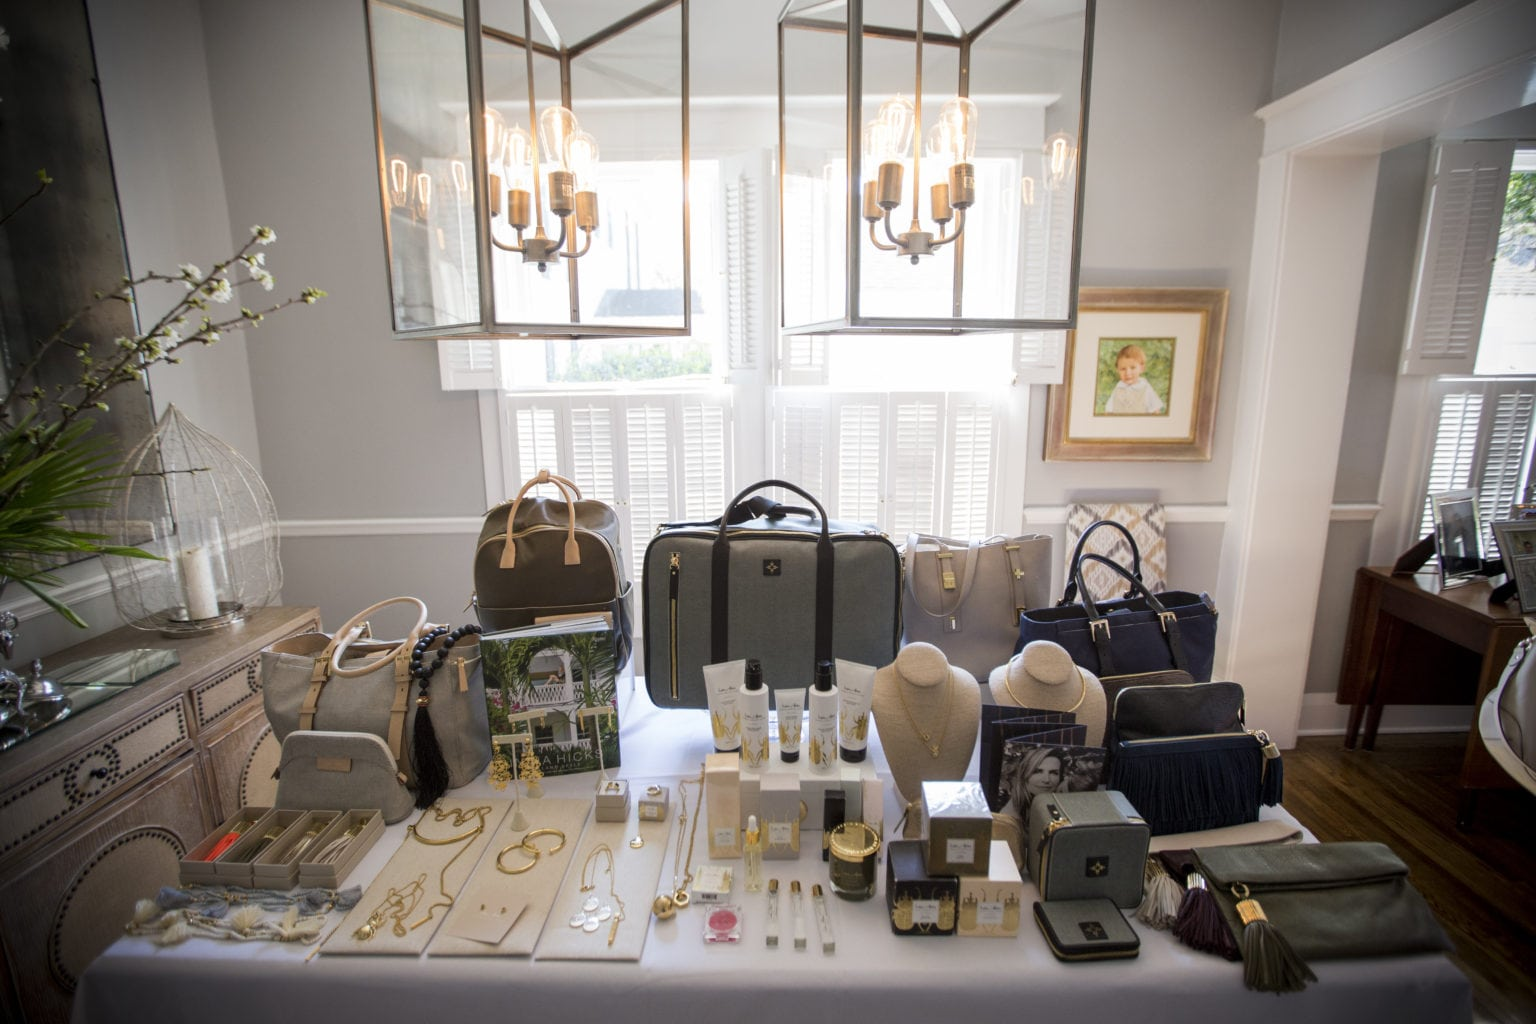 India-Hicks-Tampa- Photo-by-Brian-Adams